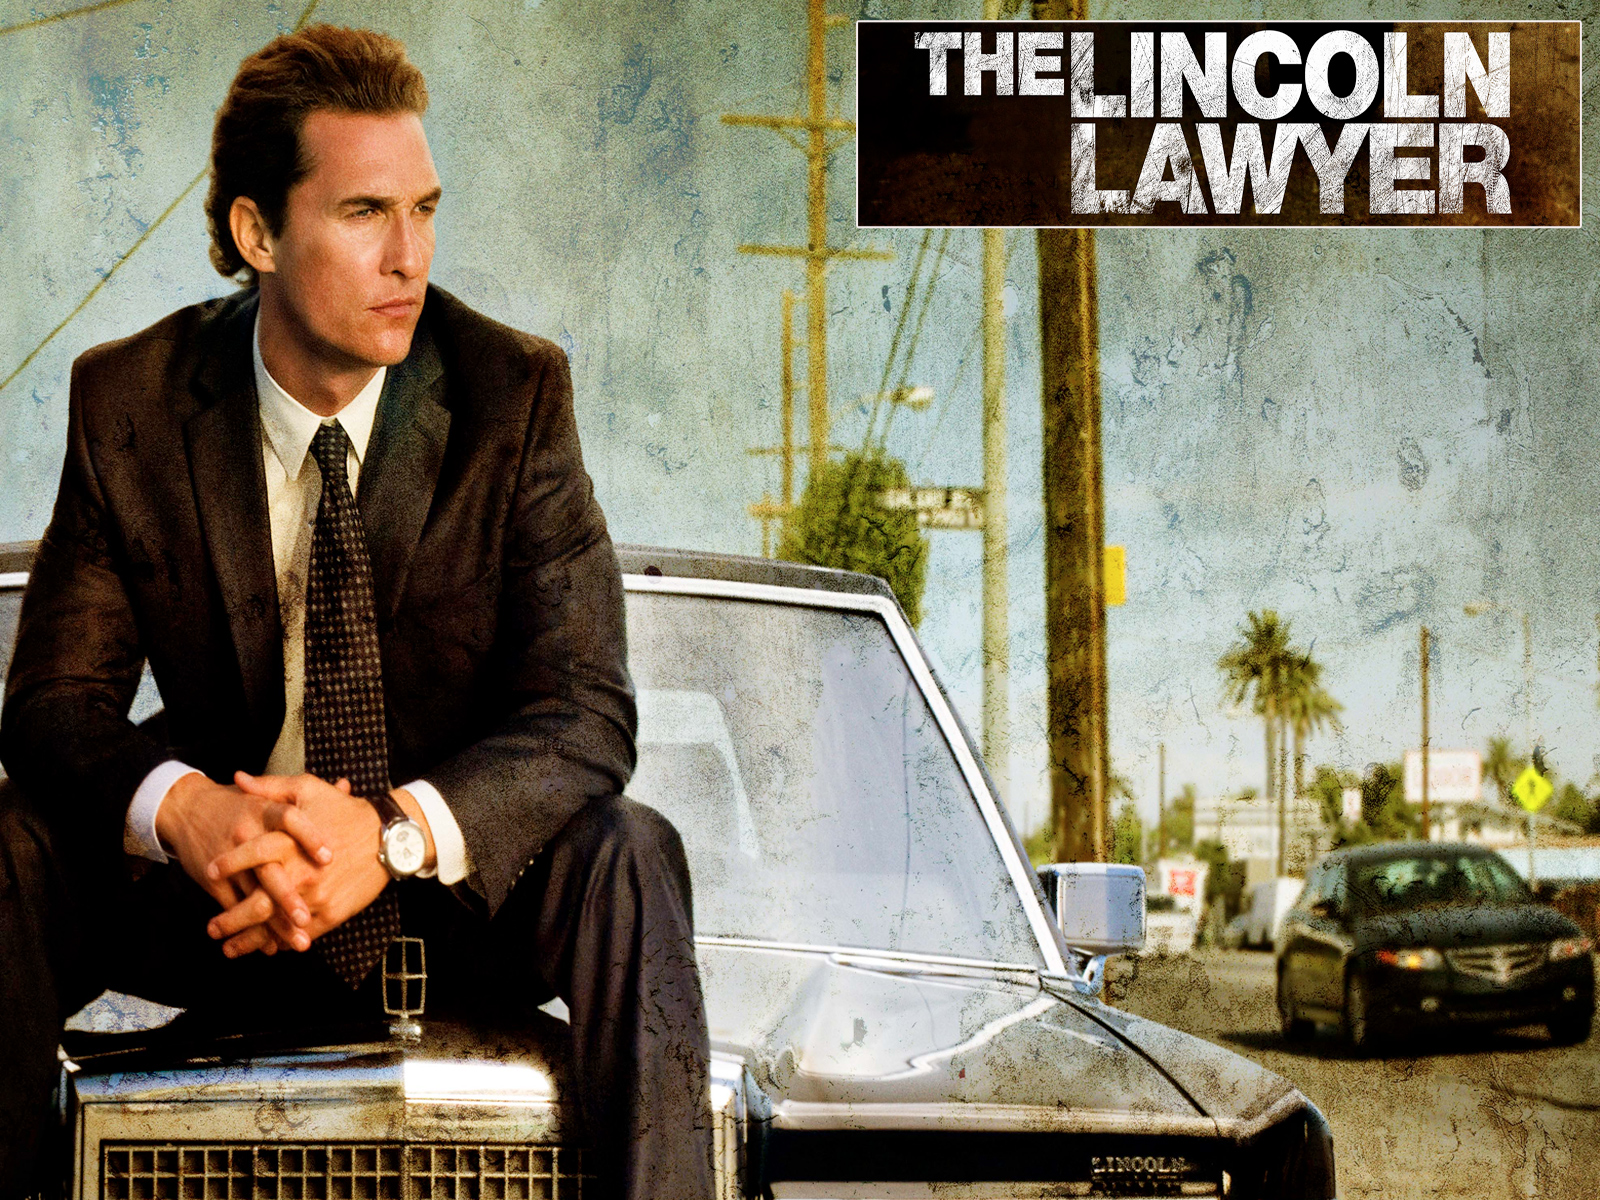 http://2.bp.blogspot.com/-OSc-Lg6tTBw/UFdYFsaI3jI/AAAAAAAAAzU/zNY0b9eHBQA/s1600/Torrent_The_Lincoln_Lawyer_Movie_freecomputerdesktopwallpaper_1600.jpg